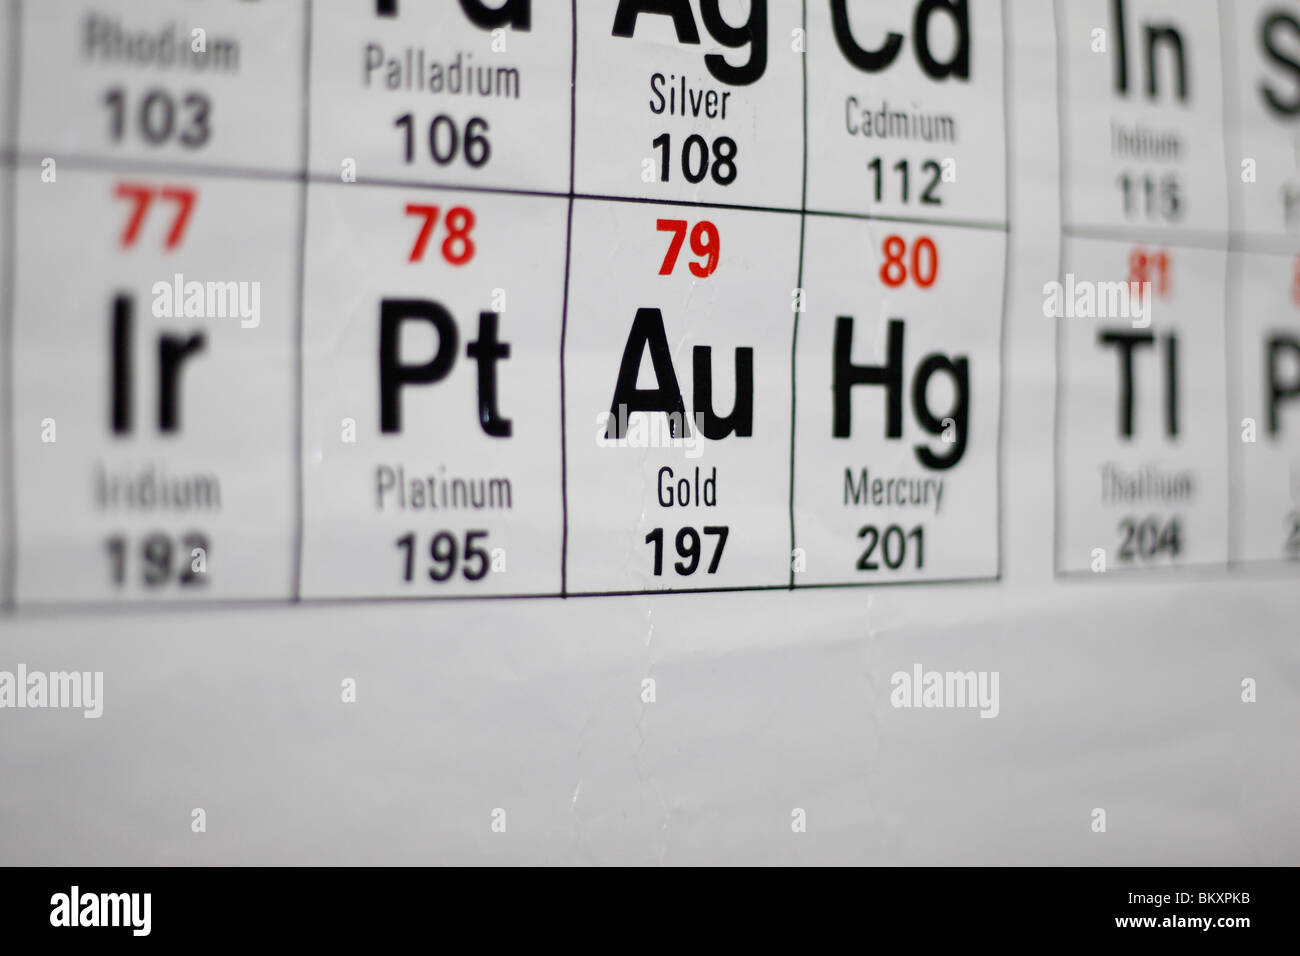 Close up angled view of a uk high school periodic table focusing close up angled view of a uk high school periodic table focusing on the element goldau with other elements out of focus urtaz